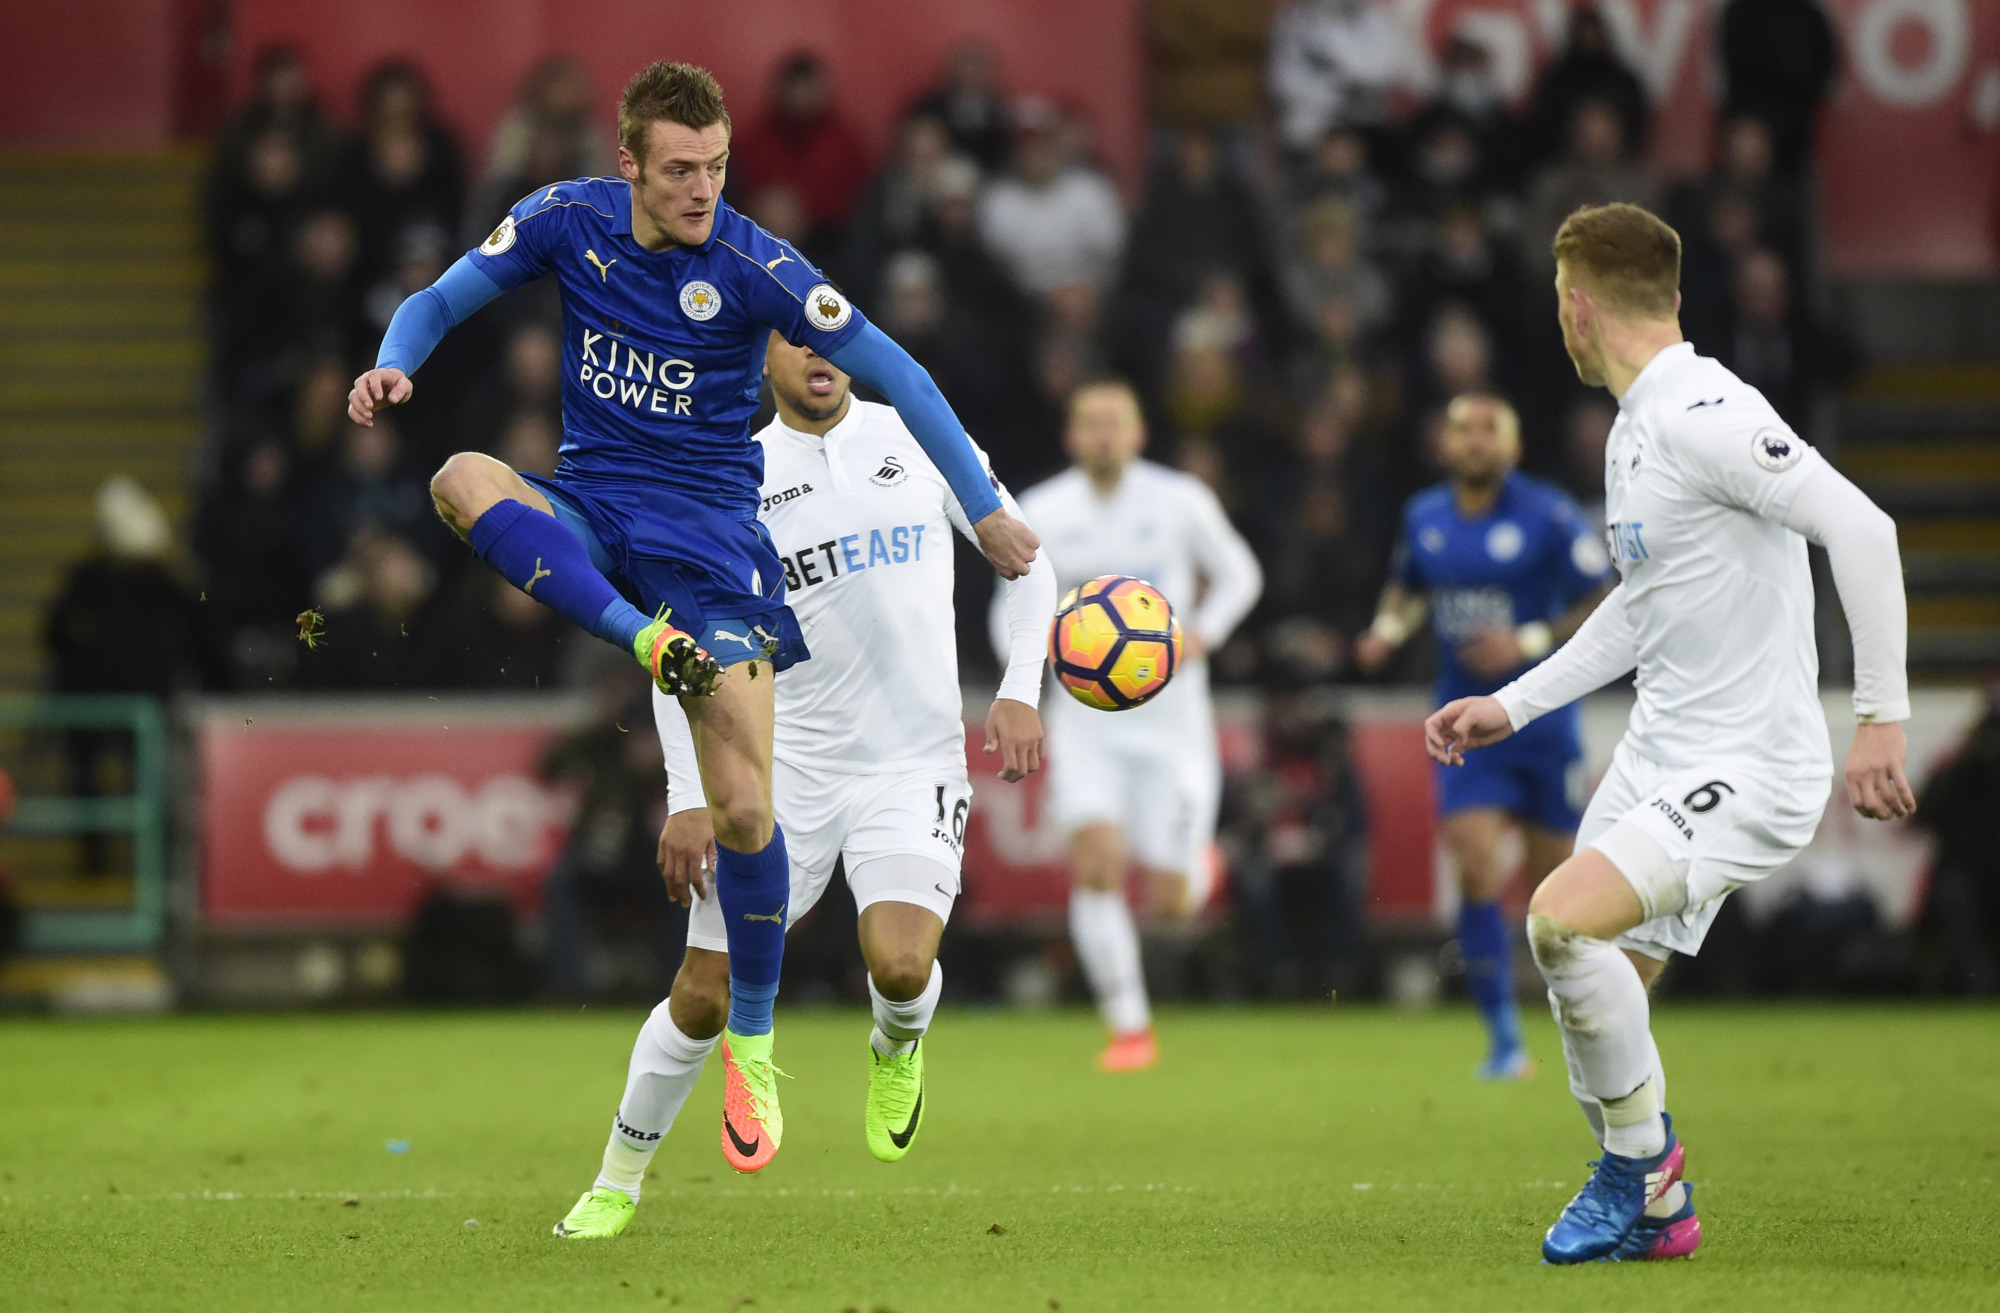 Leicester City's Jamie Vardy has scored just five goals this season. | REUTERS